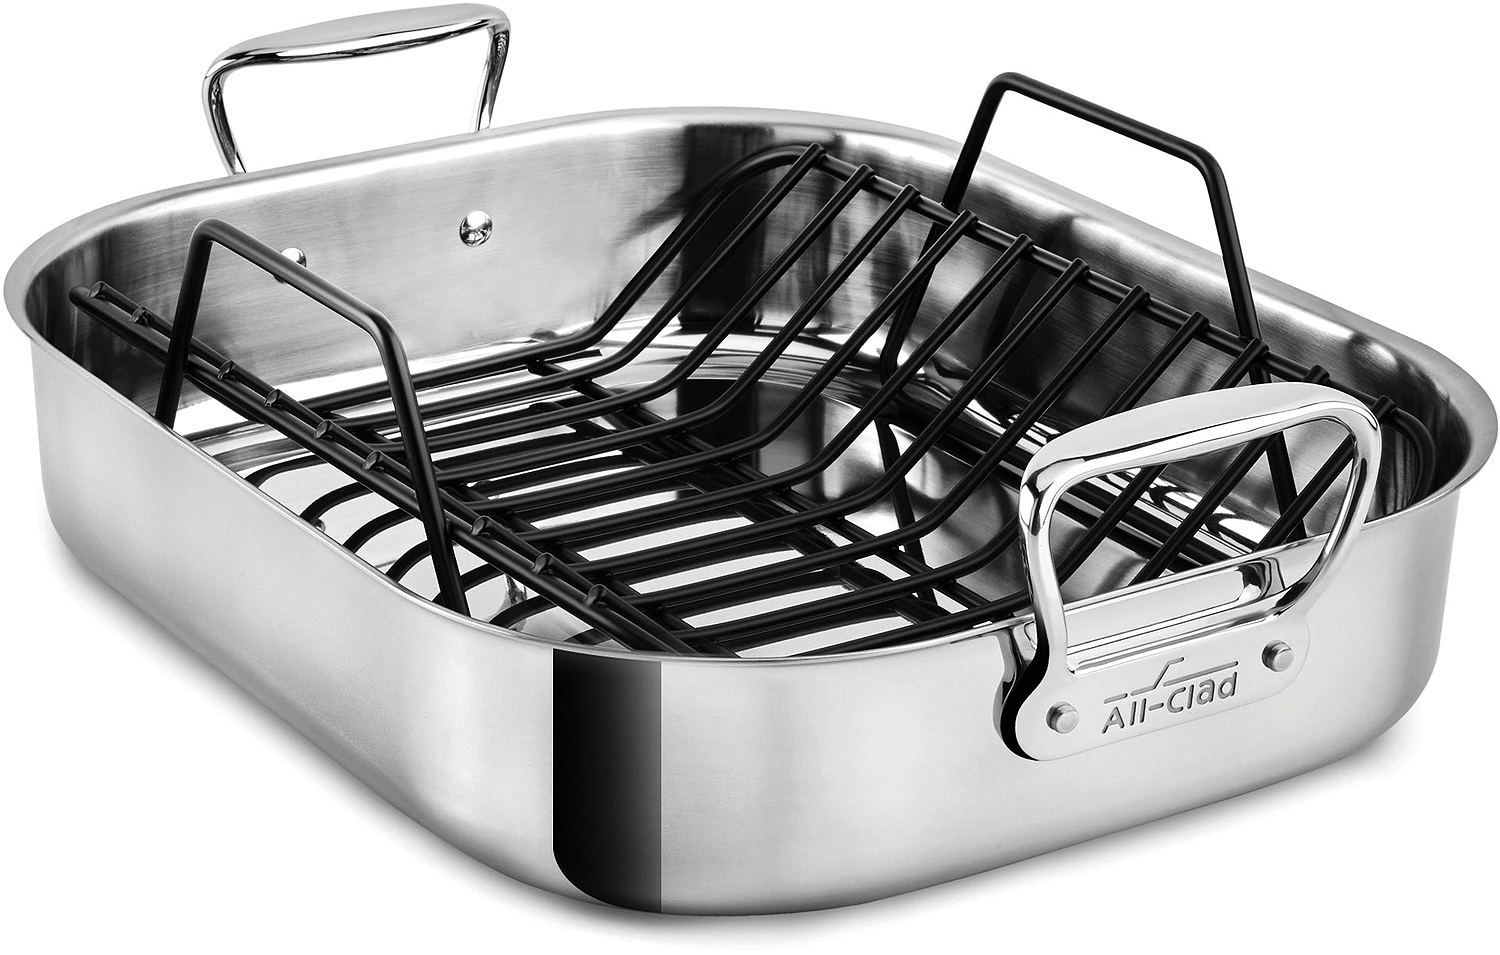 All Clad Stainless Steel Large Roasting Pan E752c264